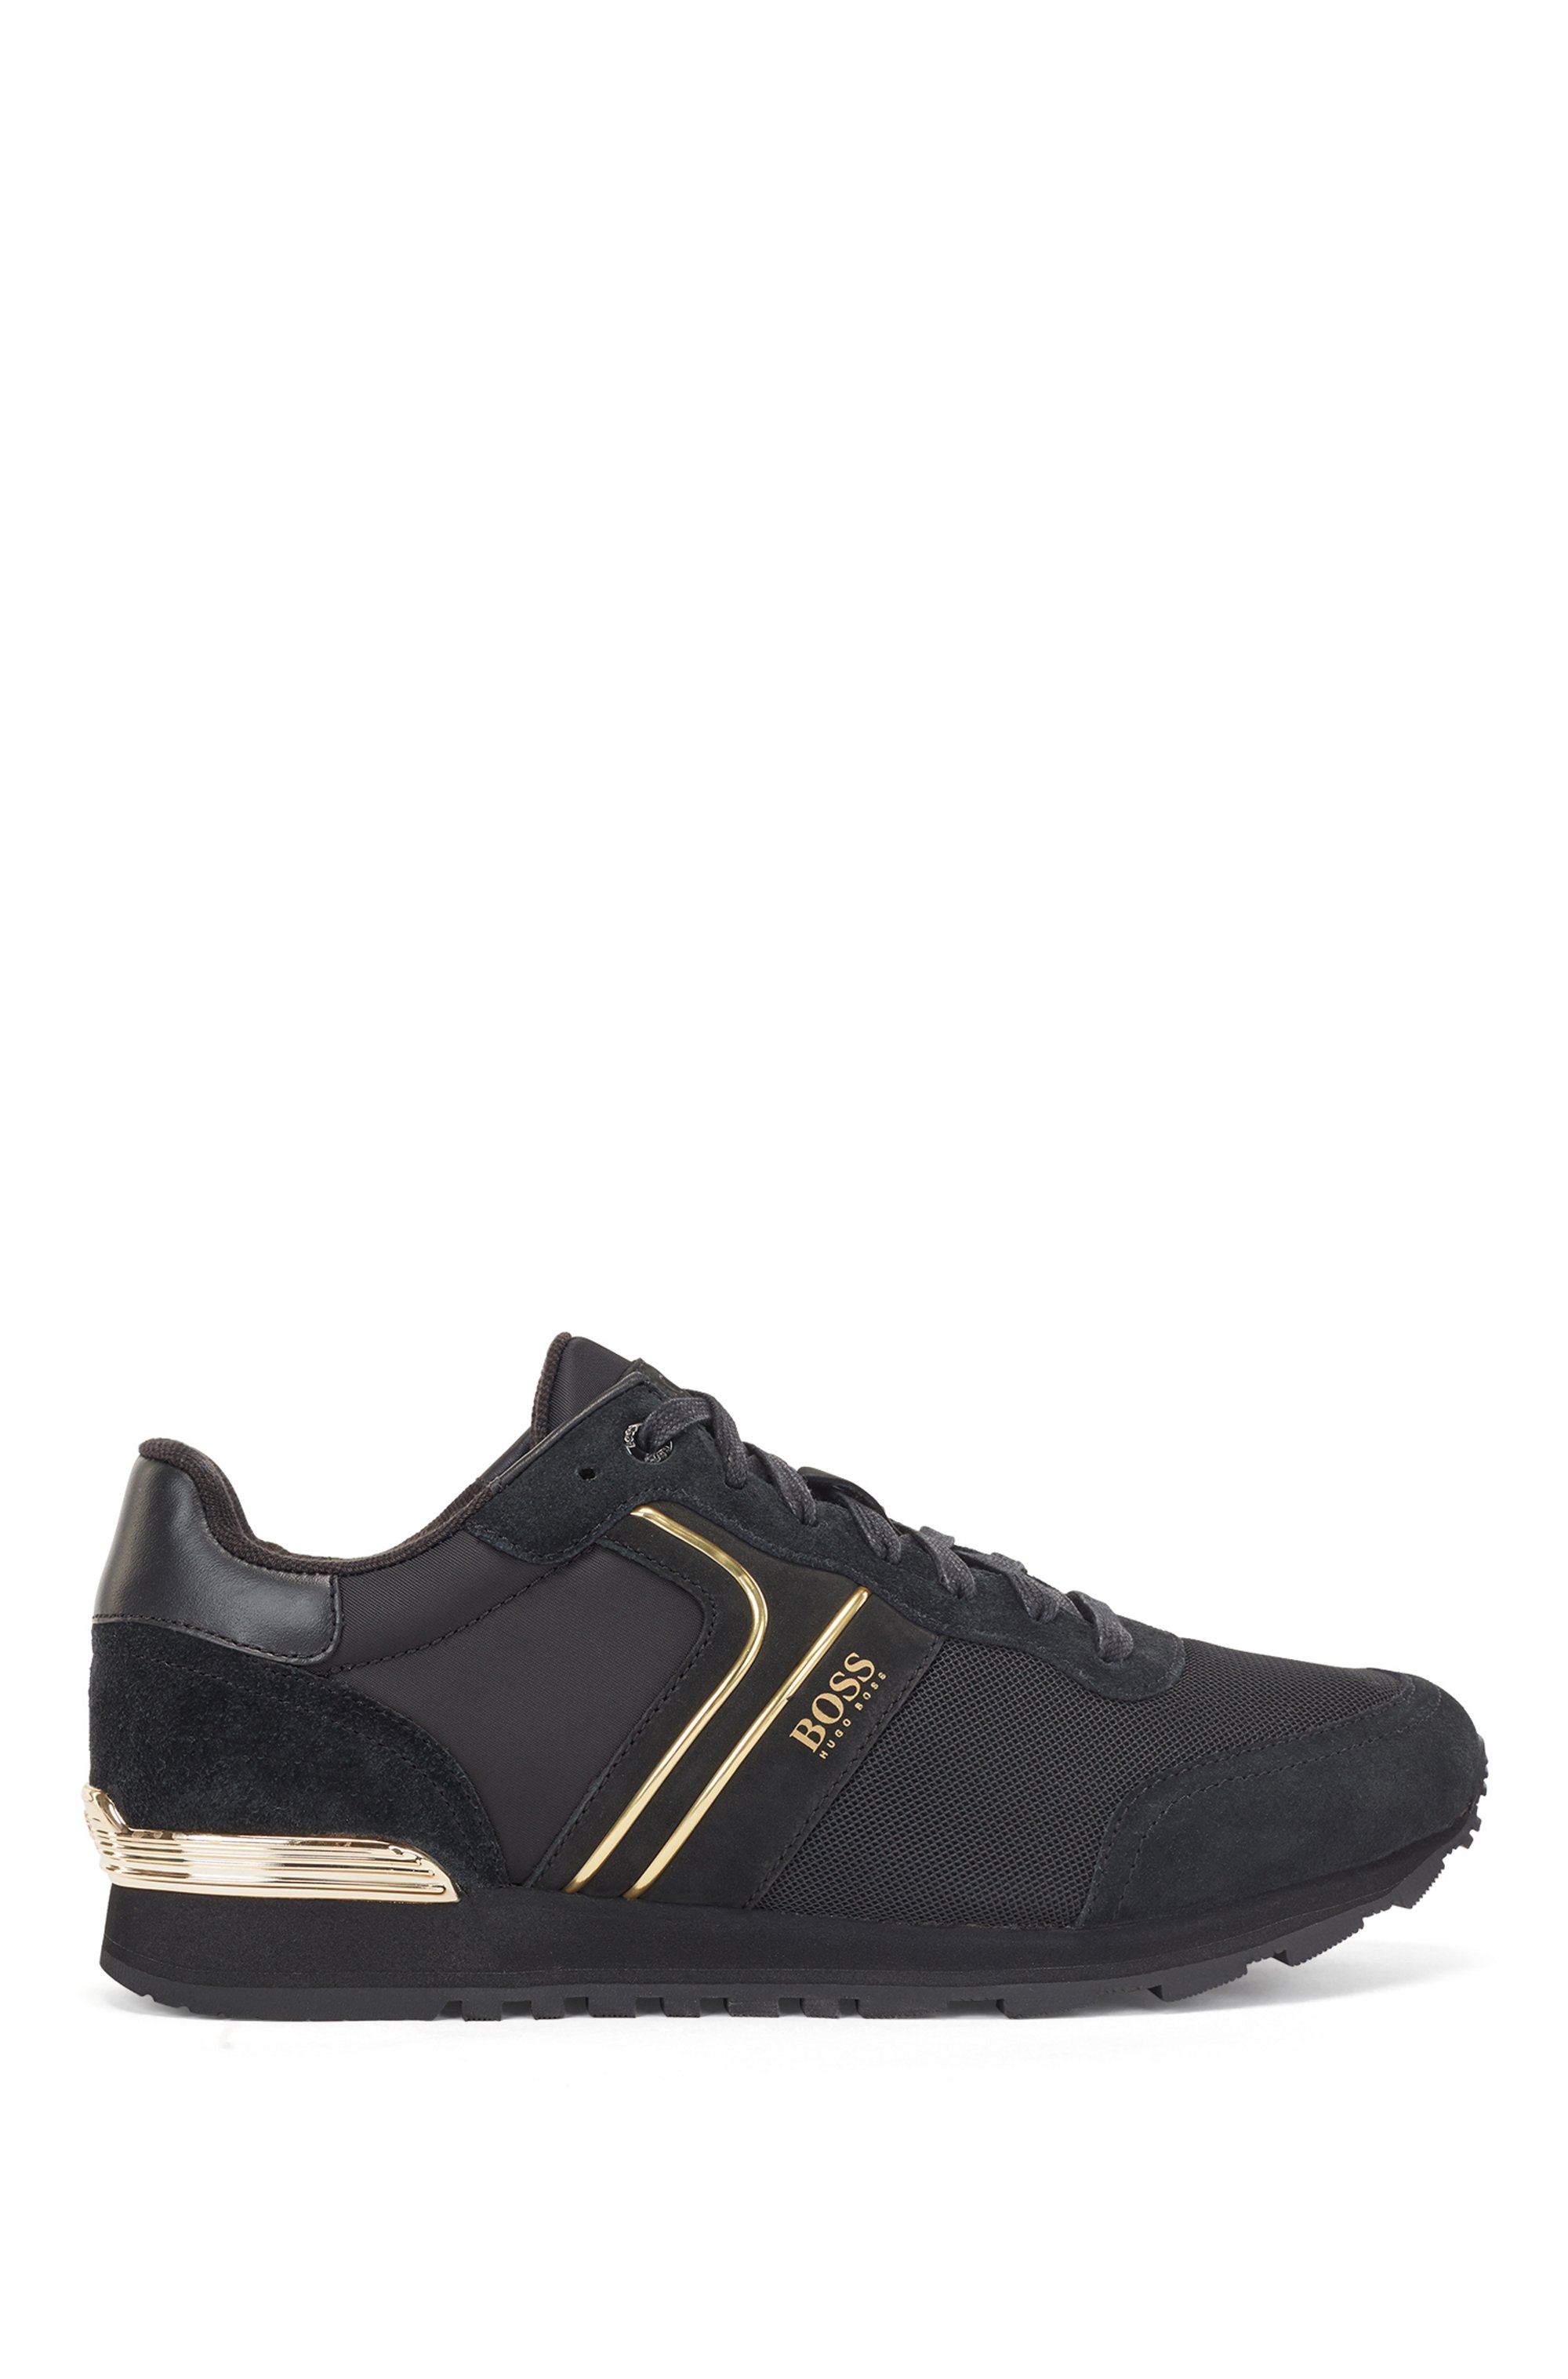 Running-style sneakers with suede and mesh, Black